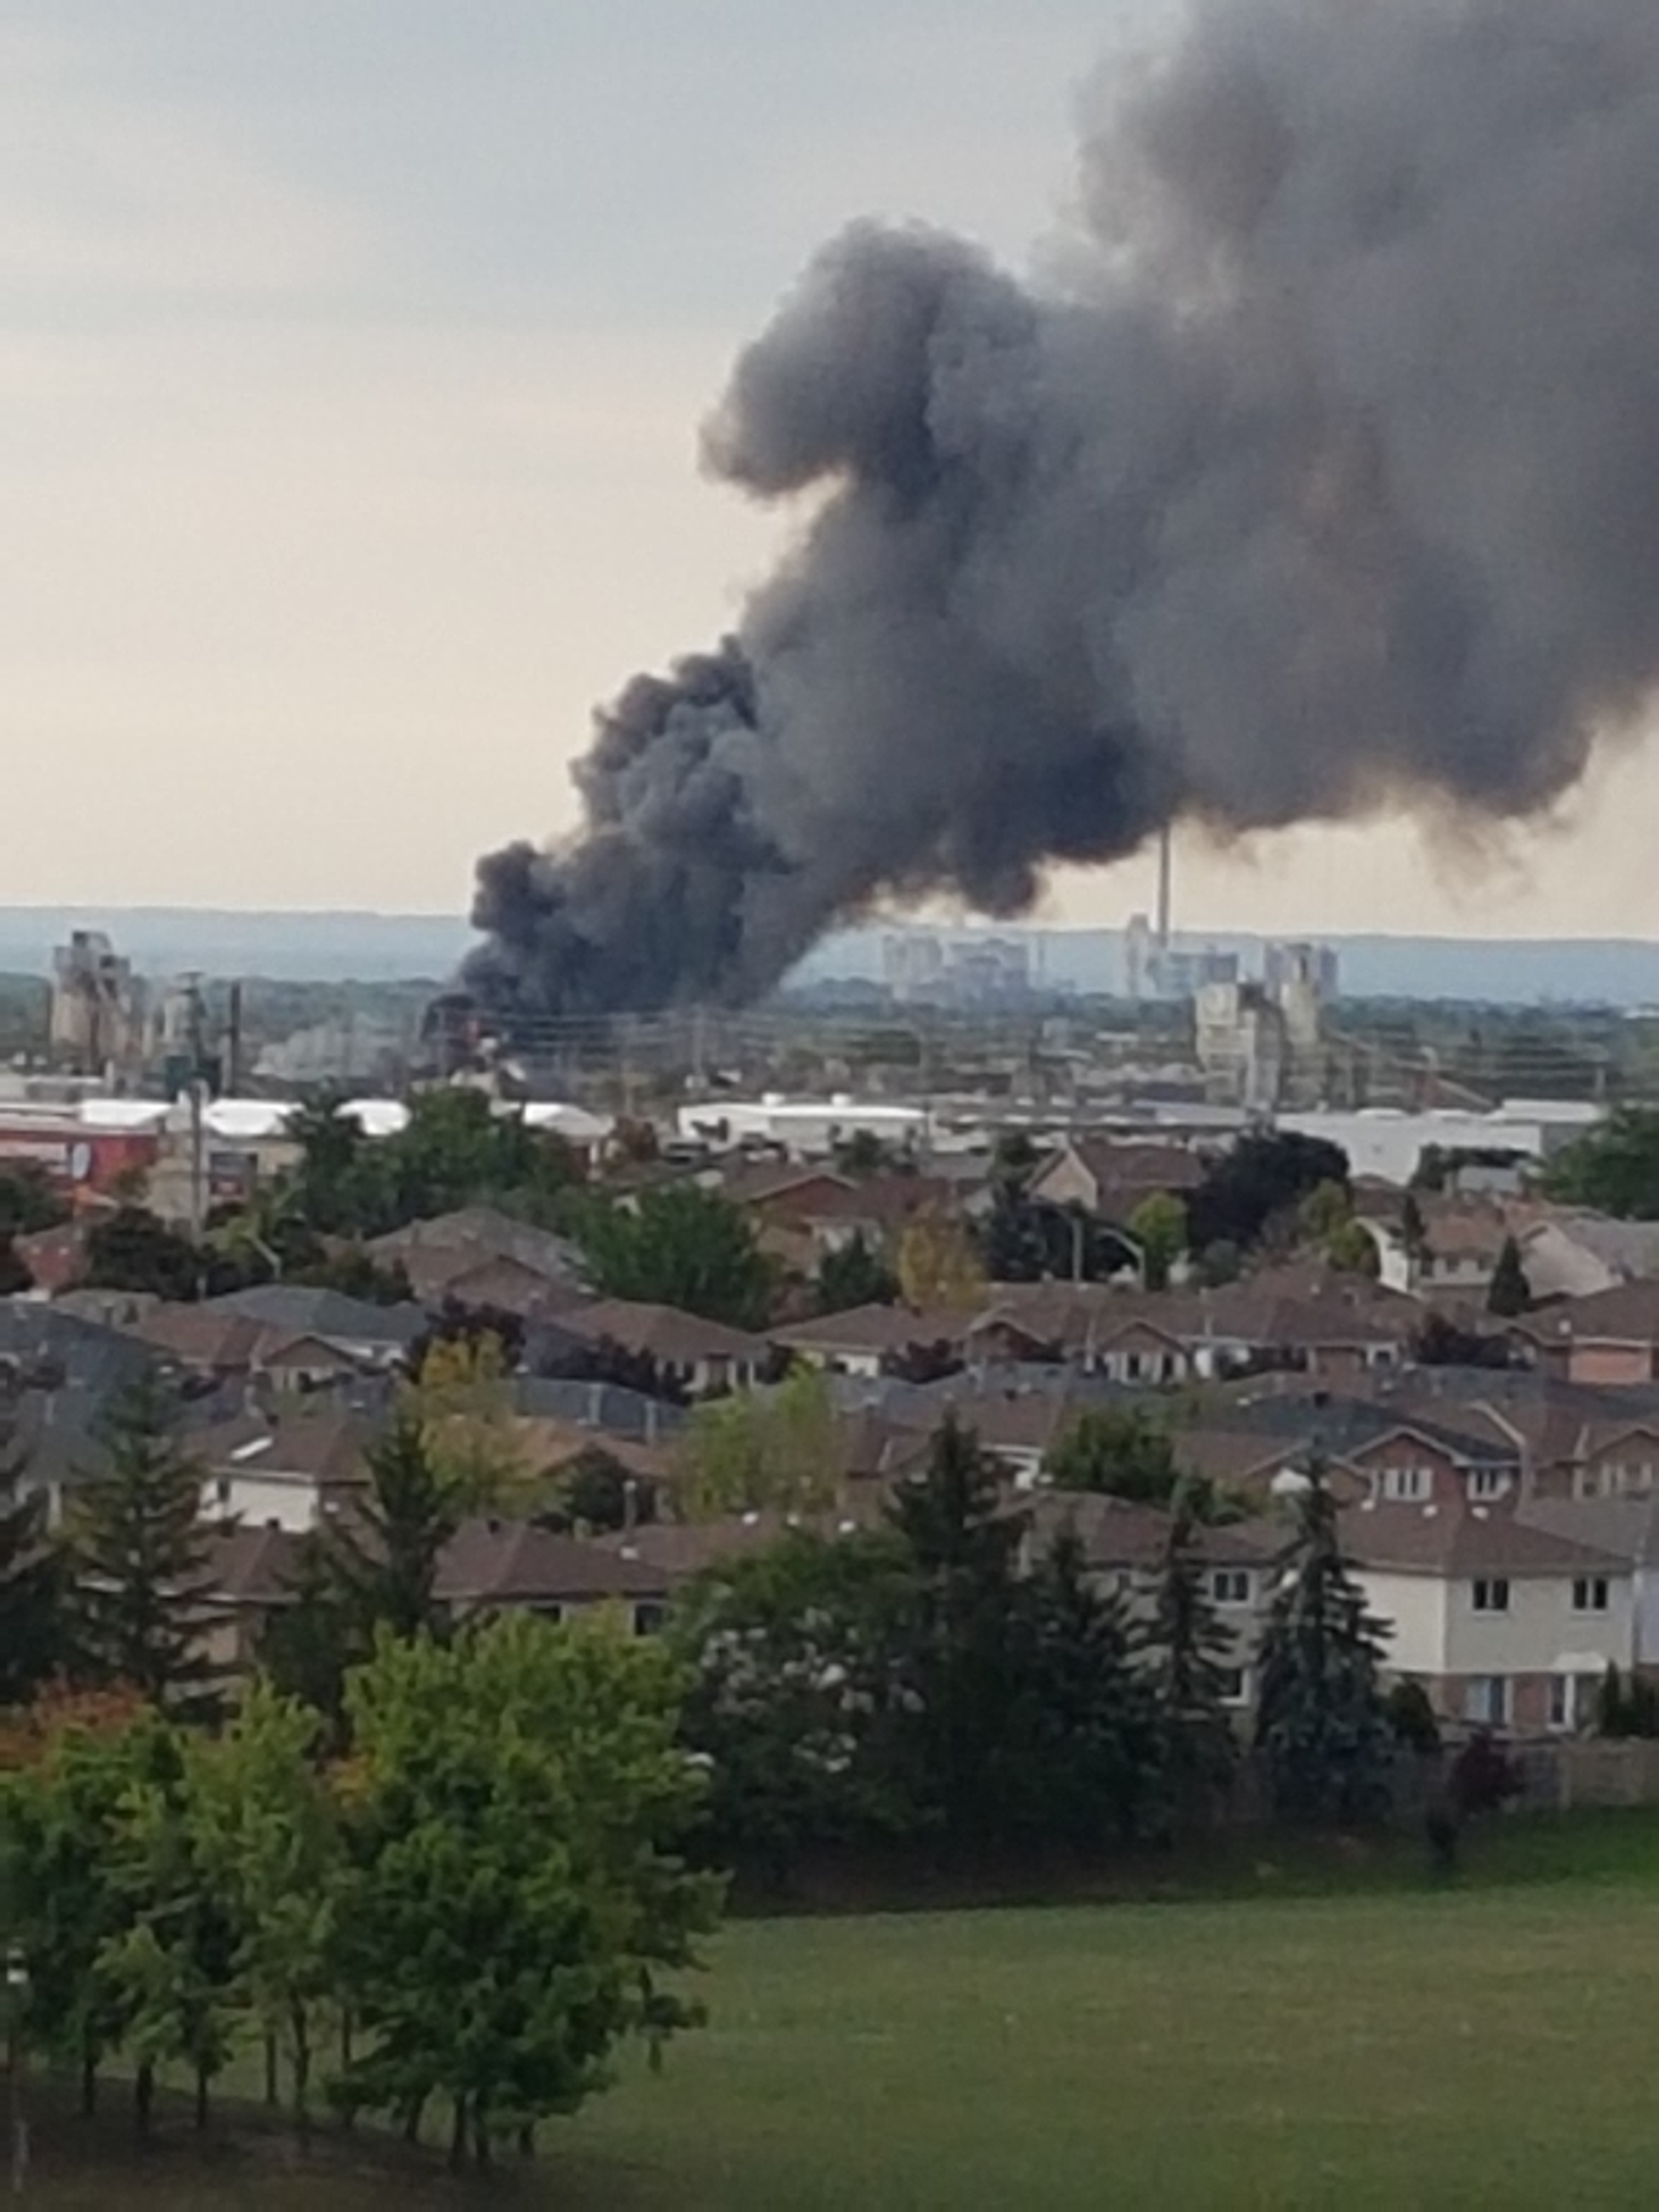 A fire broke out in a Mississauga auto scrapyard on Sept. 26, 2016 Photo courtesy Joe Cocci